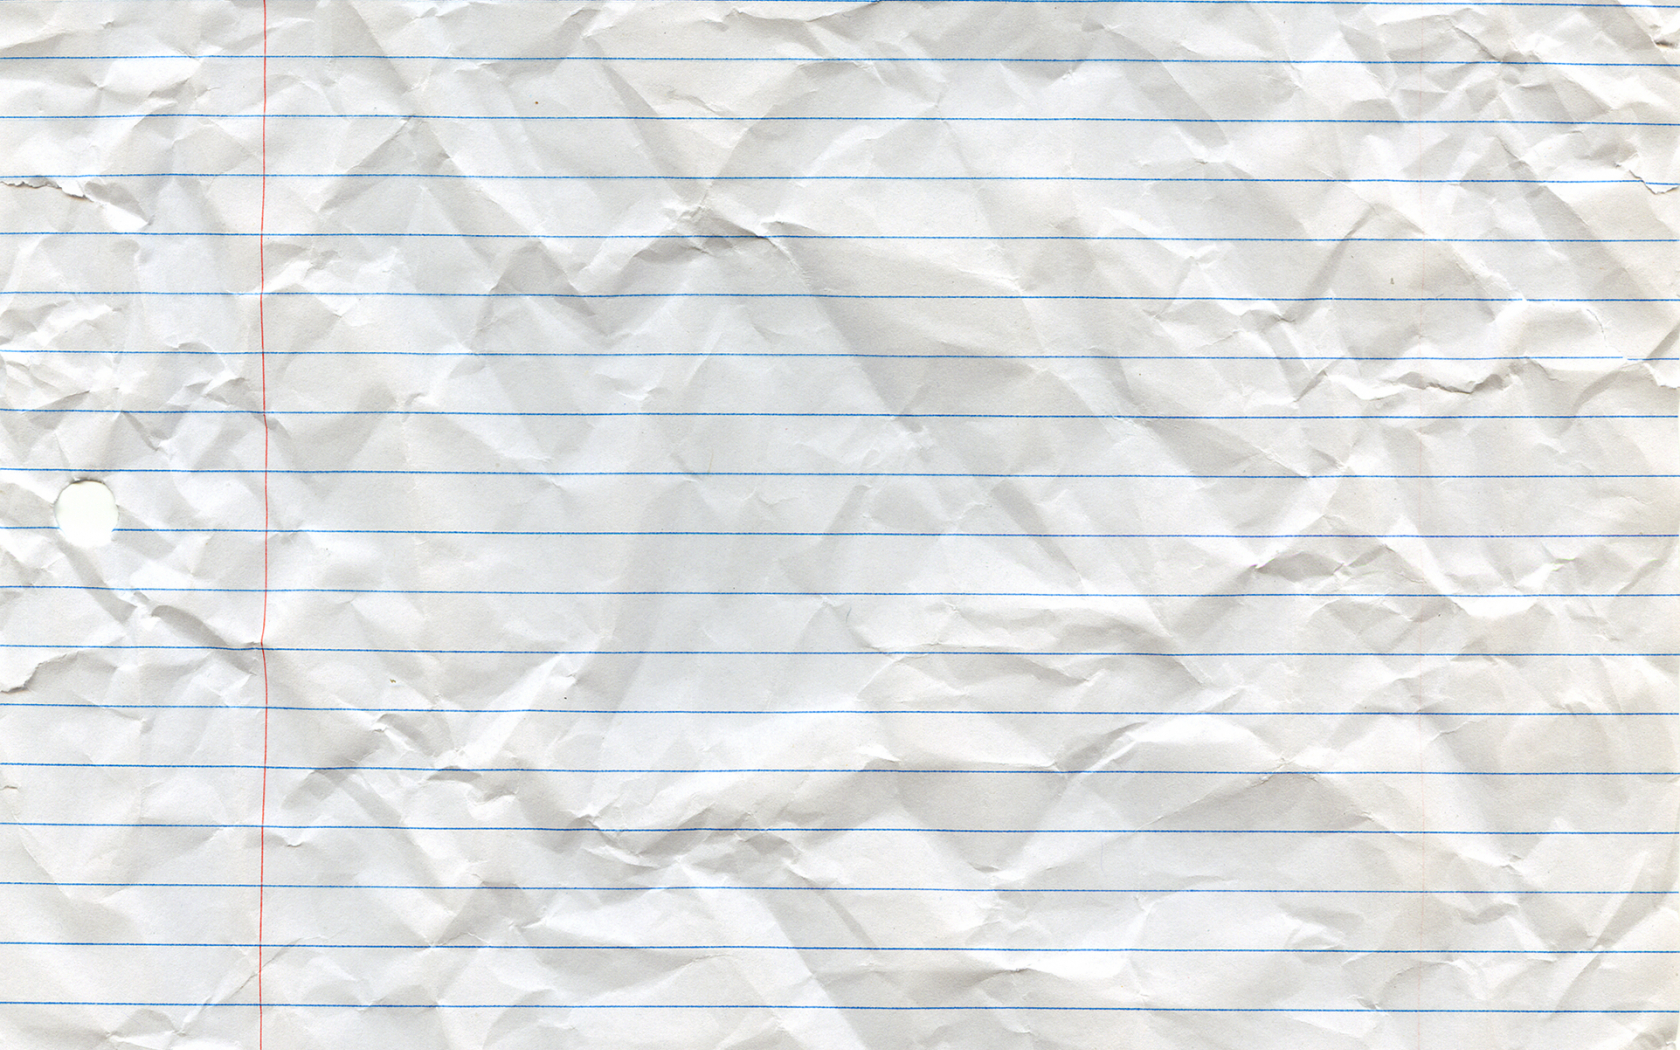 Free Download Displaying 19 Images For Crumpled Notebook Paper Background 1923x2510 For Your Desktop Mobile Tablet Explore 48 Notebook Paper Wallpaper Wallpaper For Notebook Laptop Free The Notebook Wallpaper Free Notebook Wallpapers Find the best free stock images about notebook paper background. notebook paper wallpaper